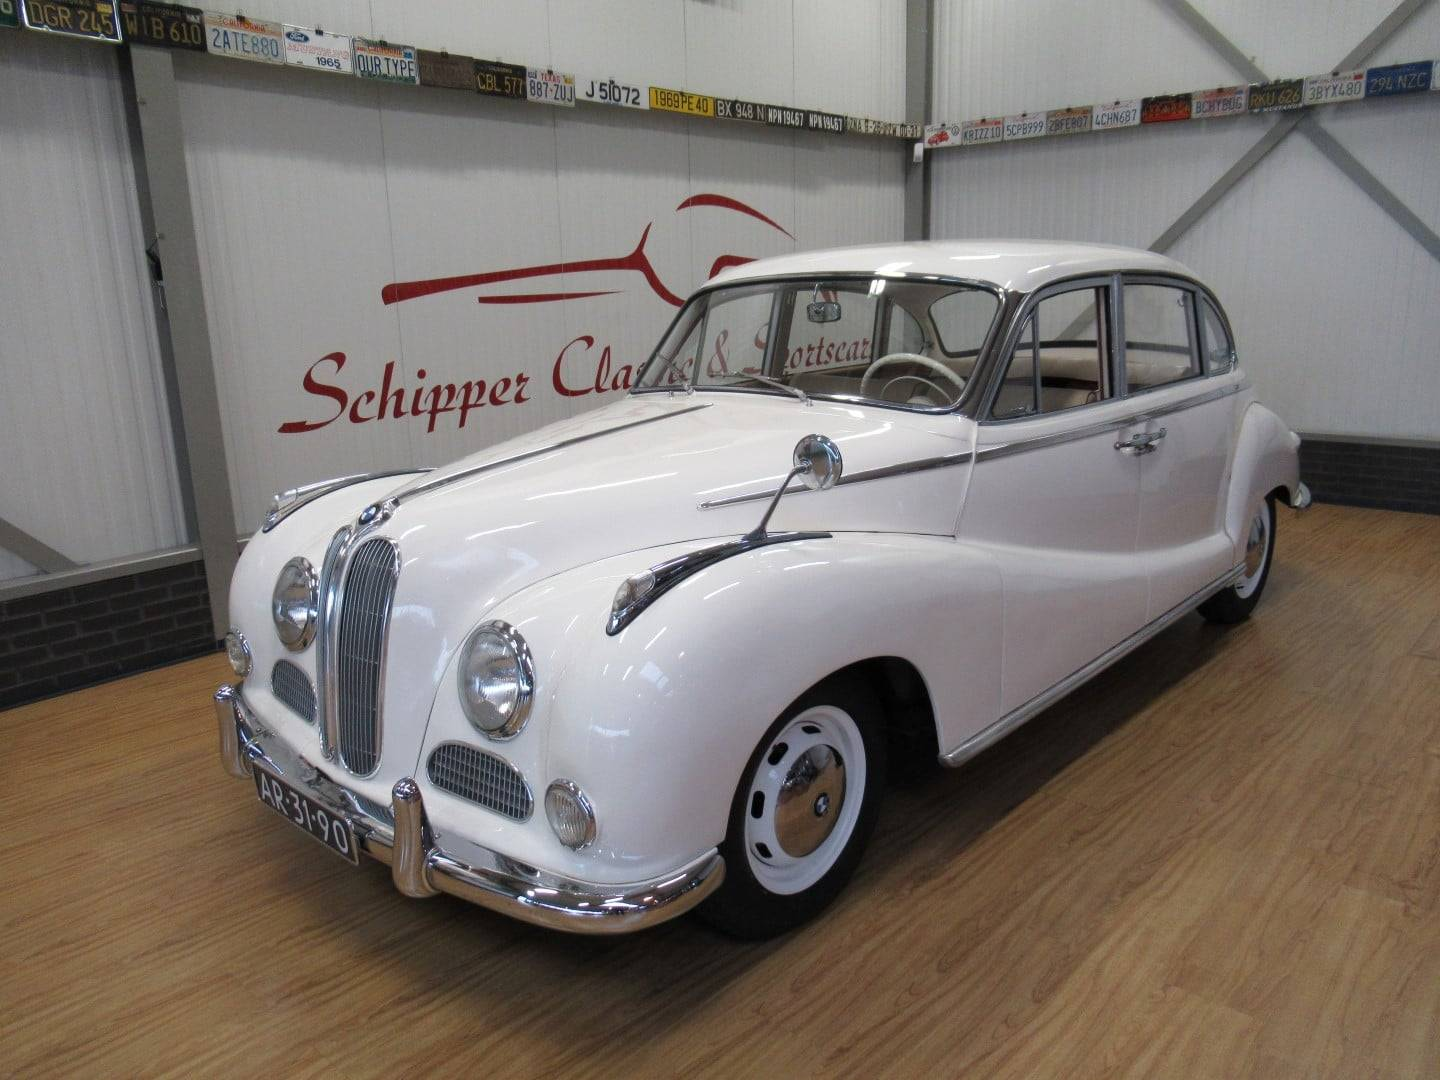 BMW 502 - 3,2 Litre Super